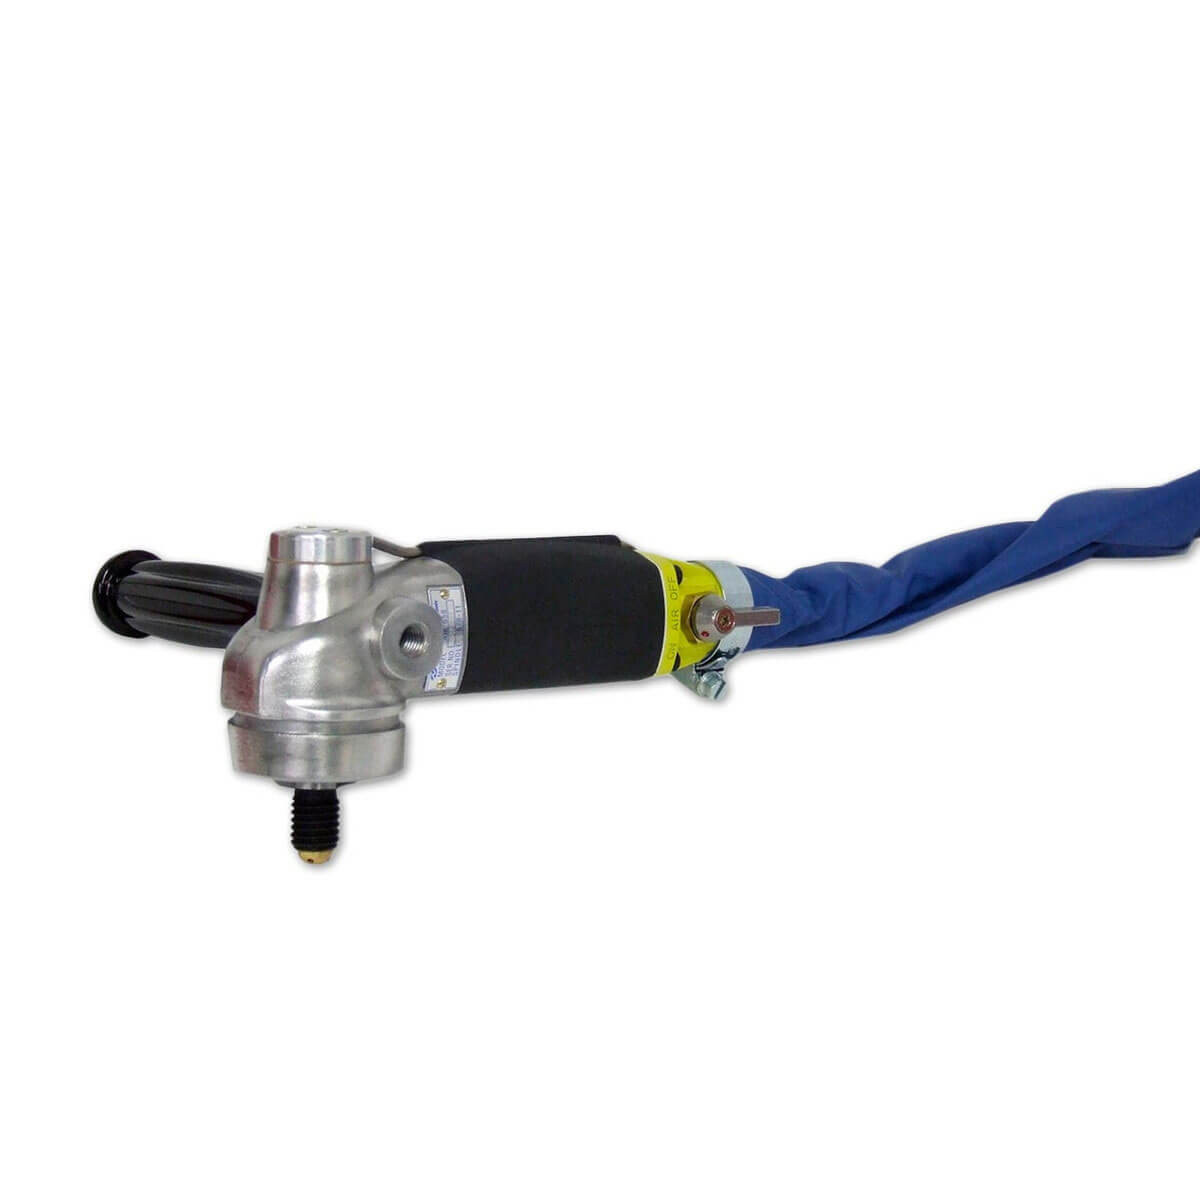 Alpha Tools AIR-680 Pneumatic Wet Polisher